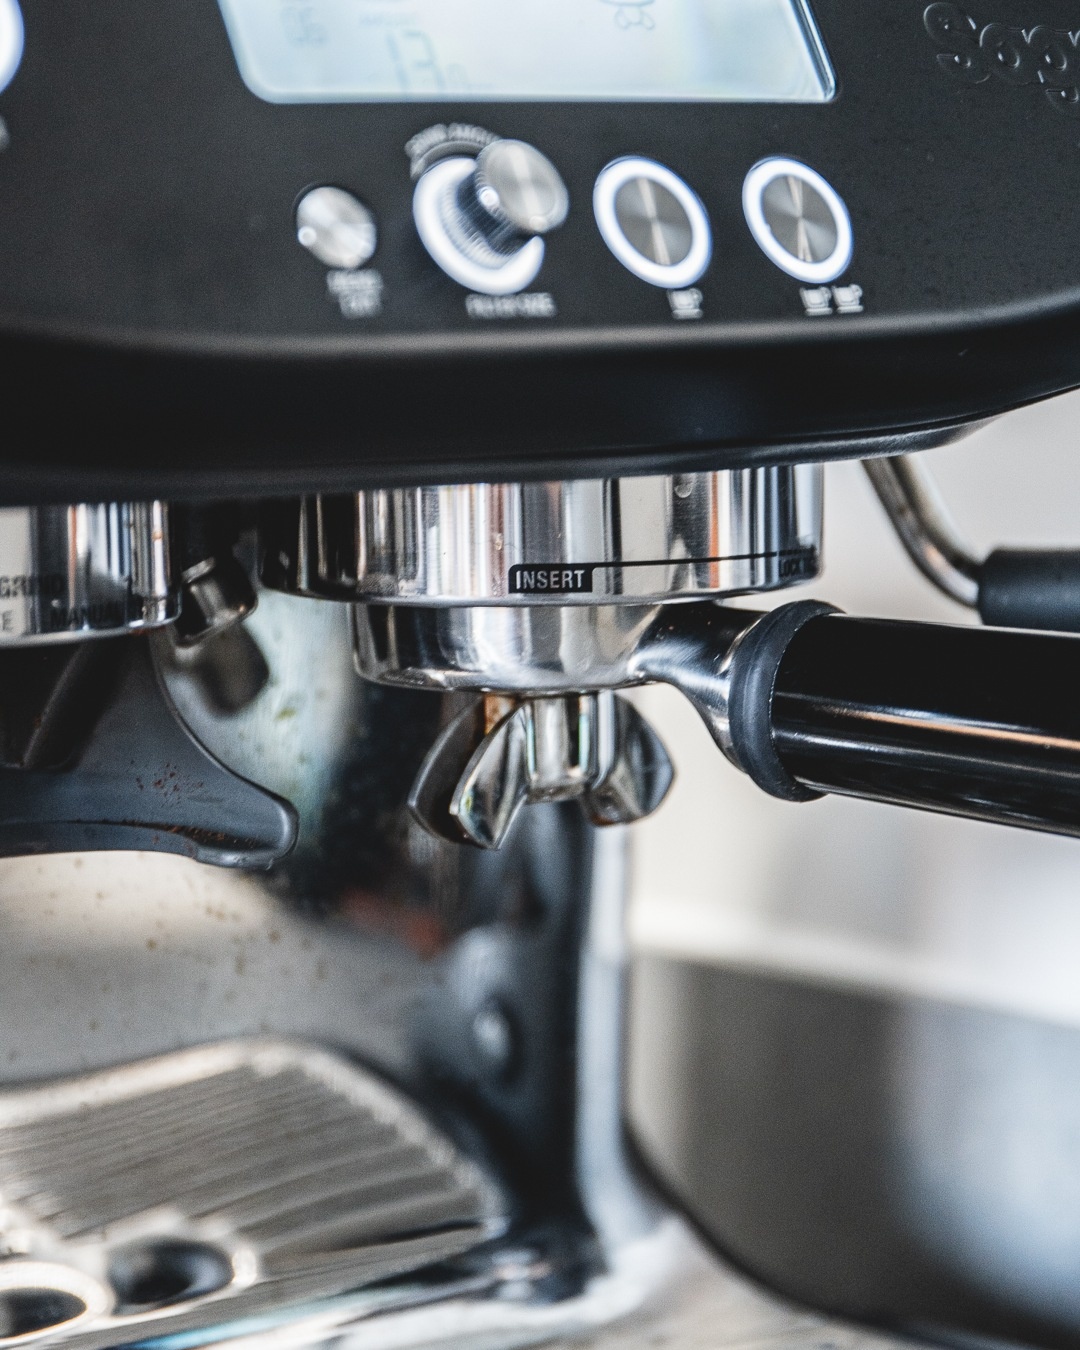 How to maintain your new Sage espresso machine